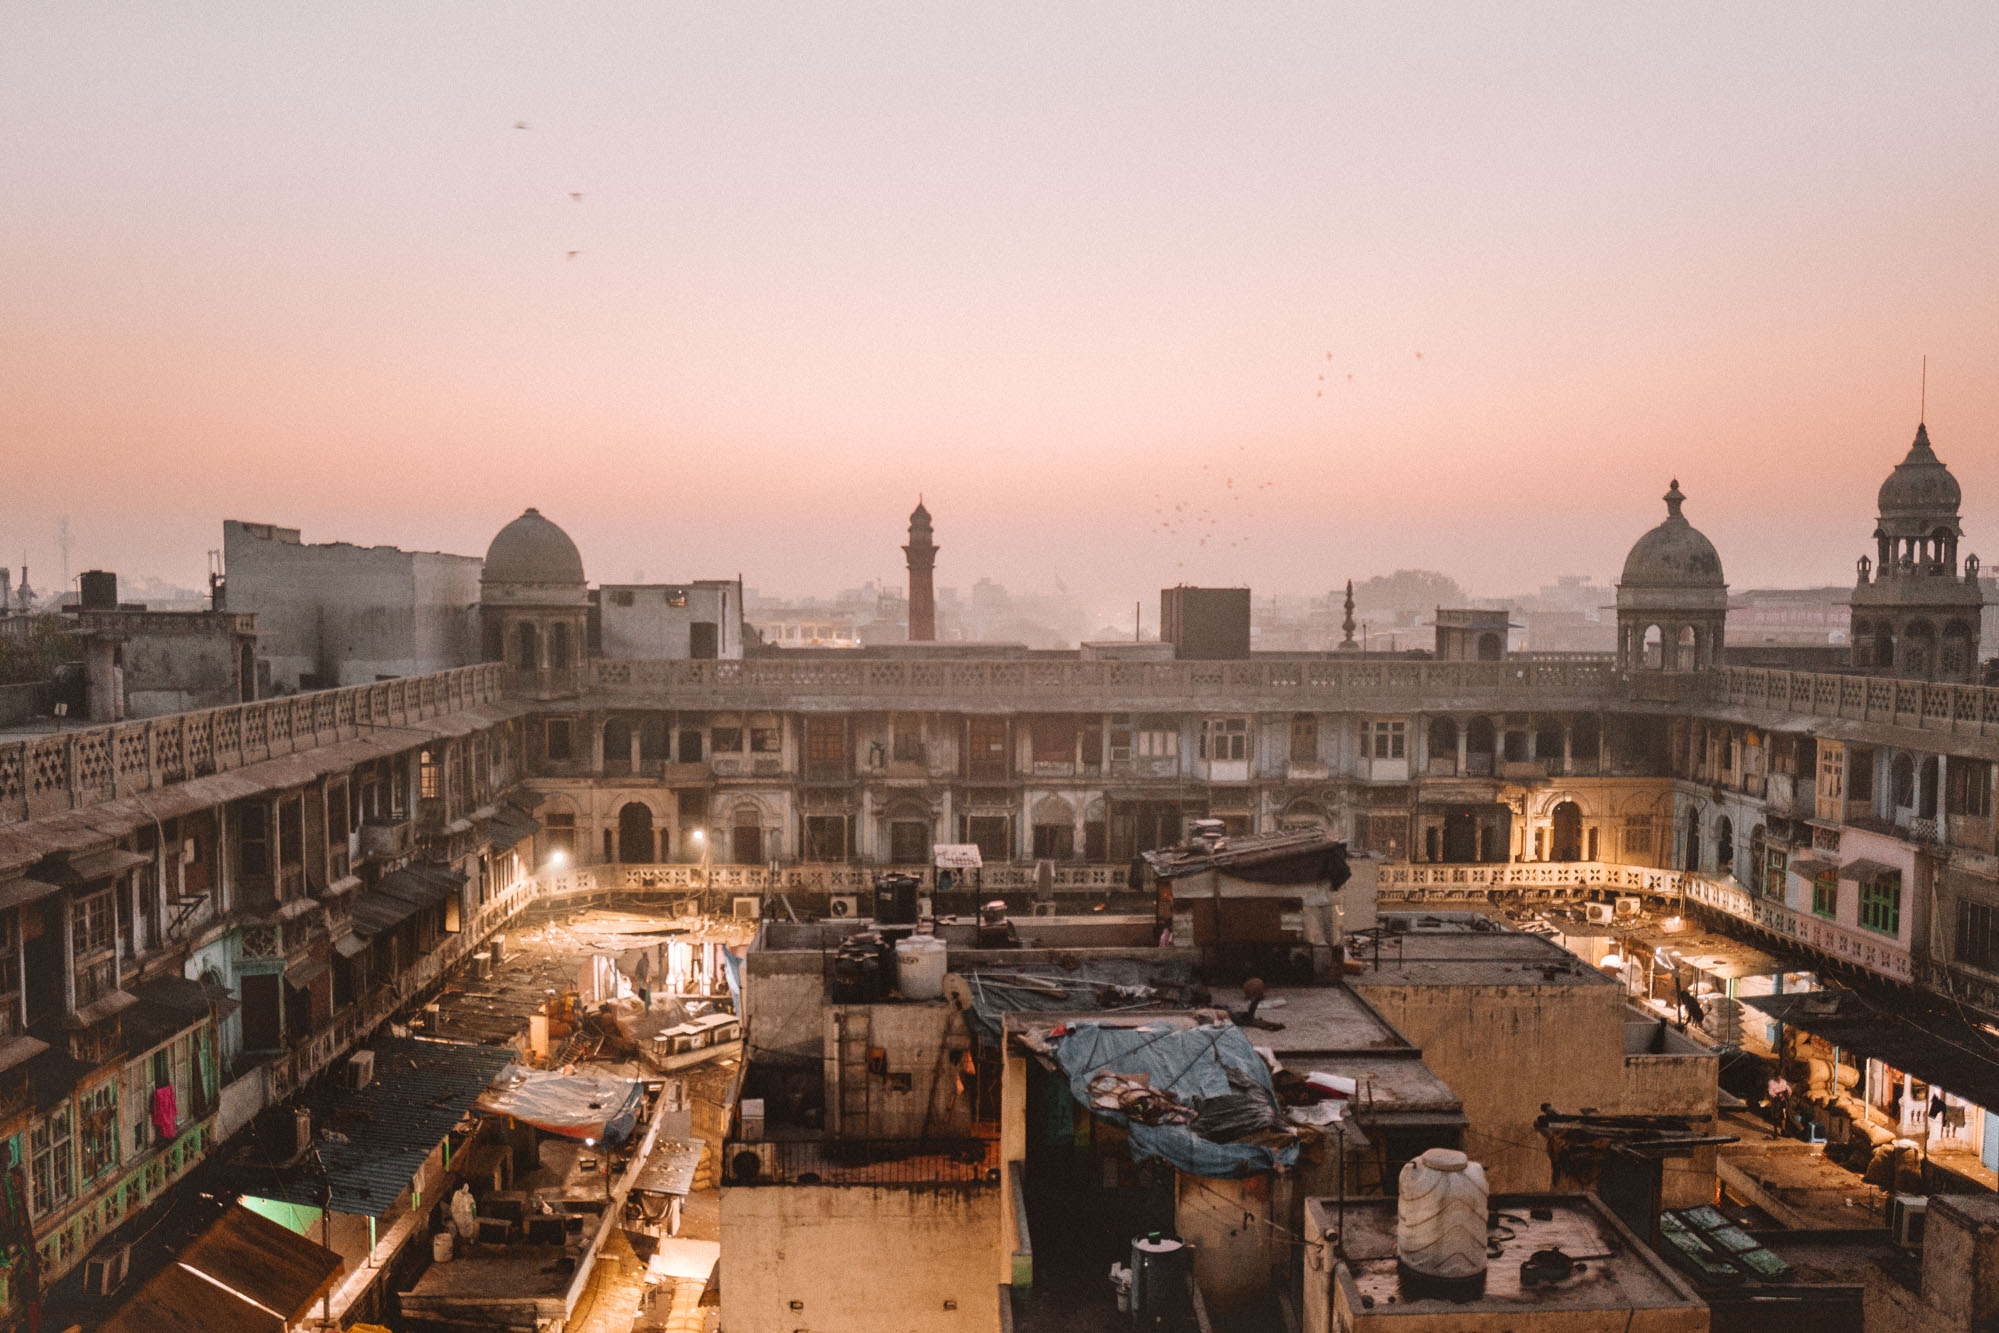 Old Delhi Spice Market Rooftop in India via @finduslost